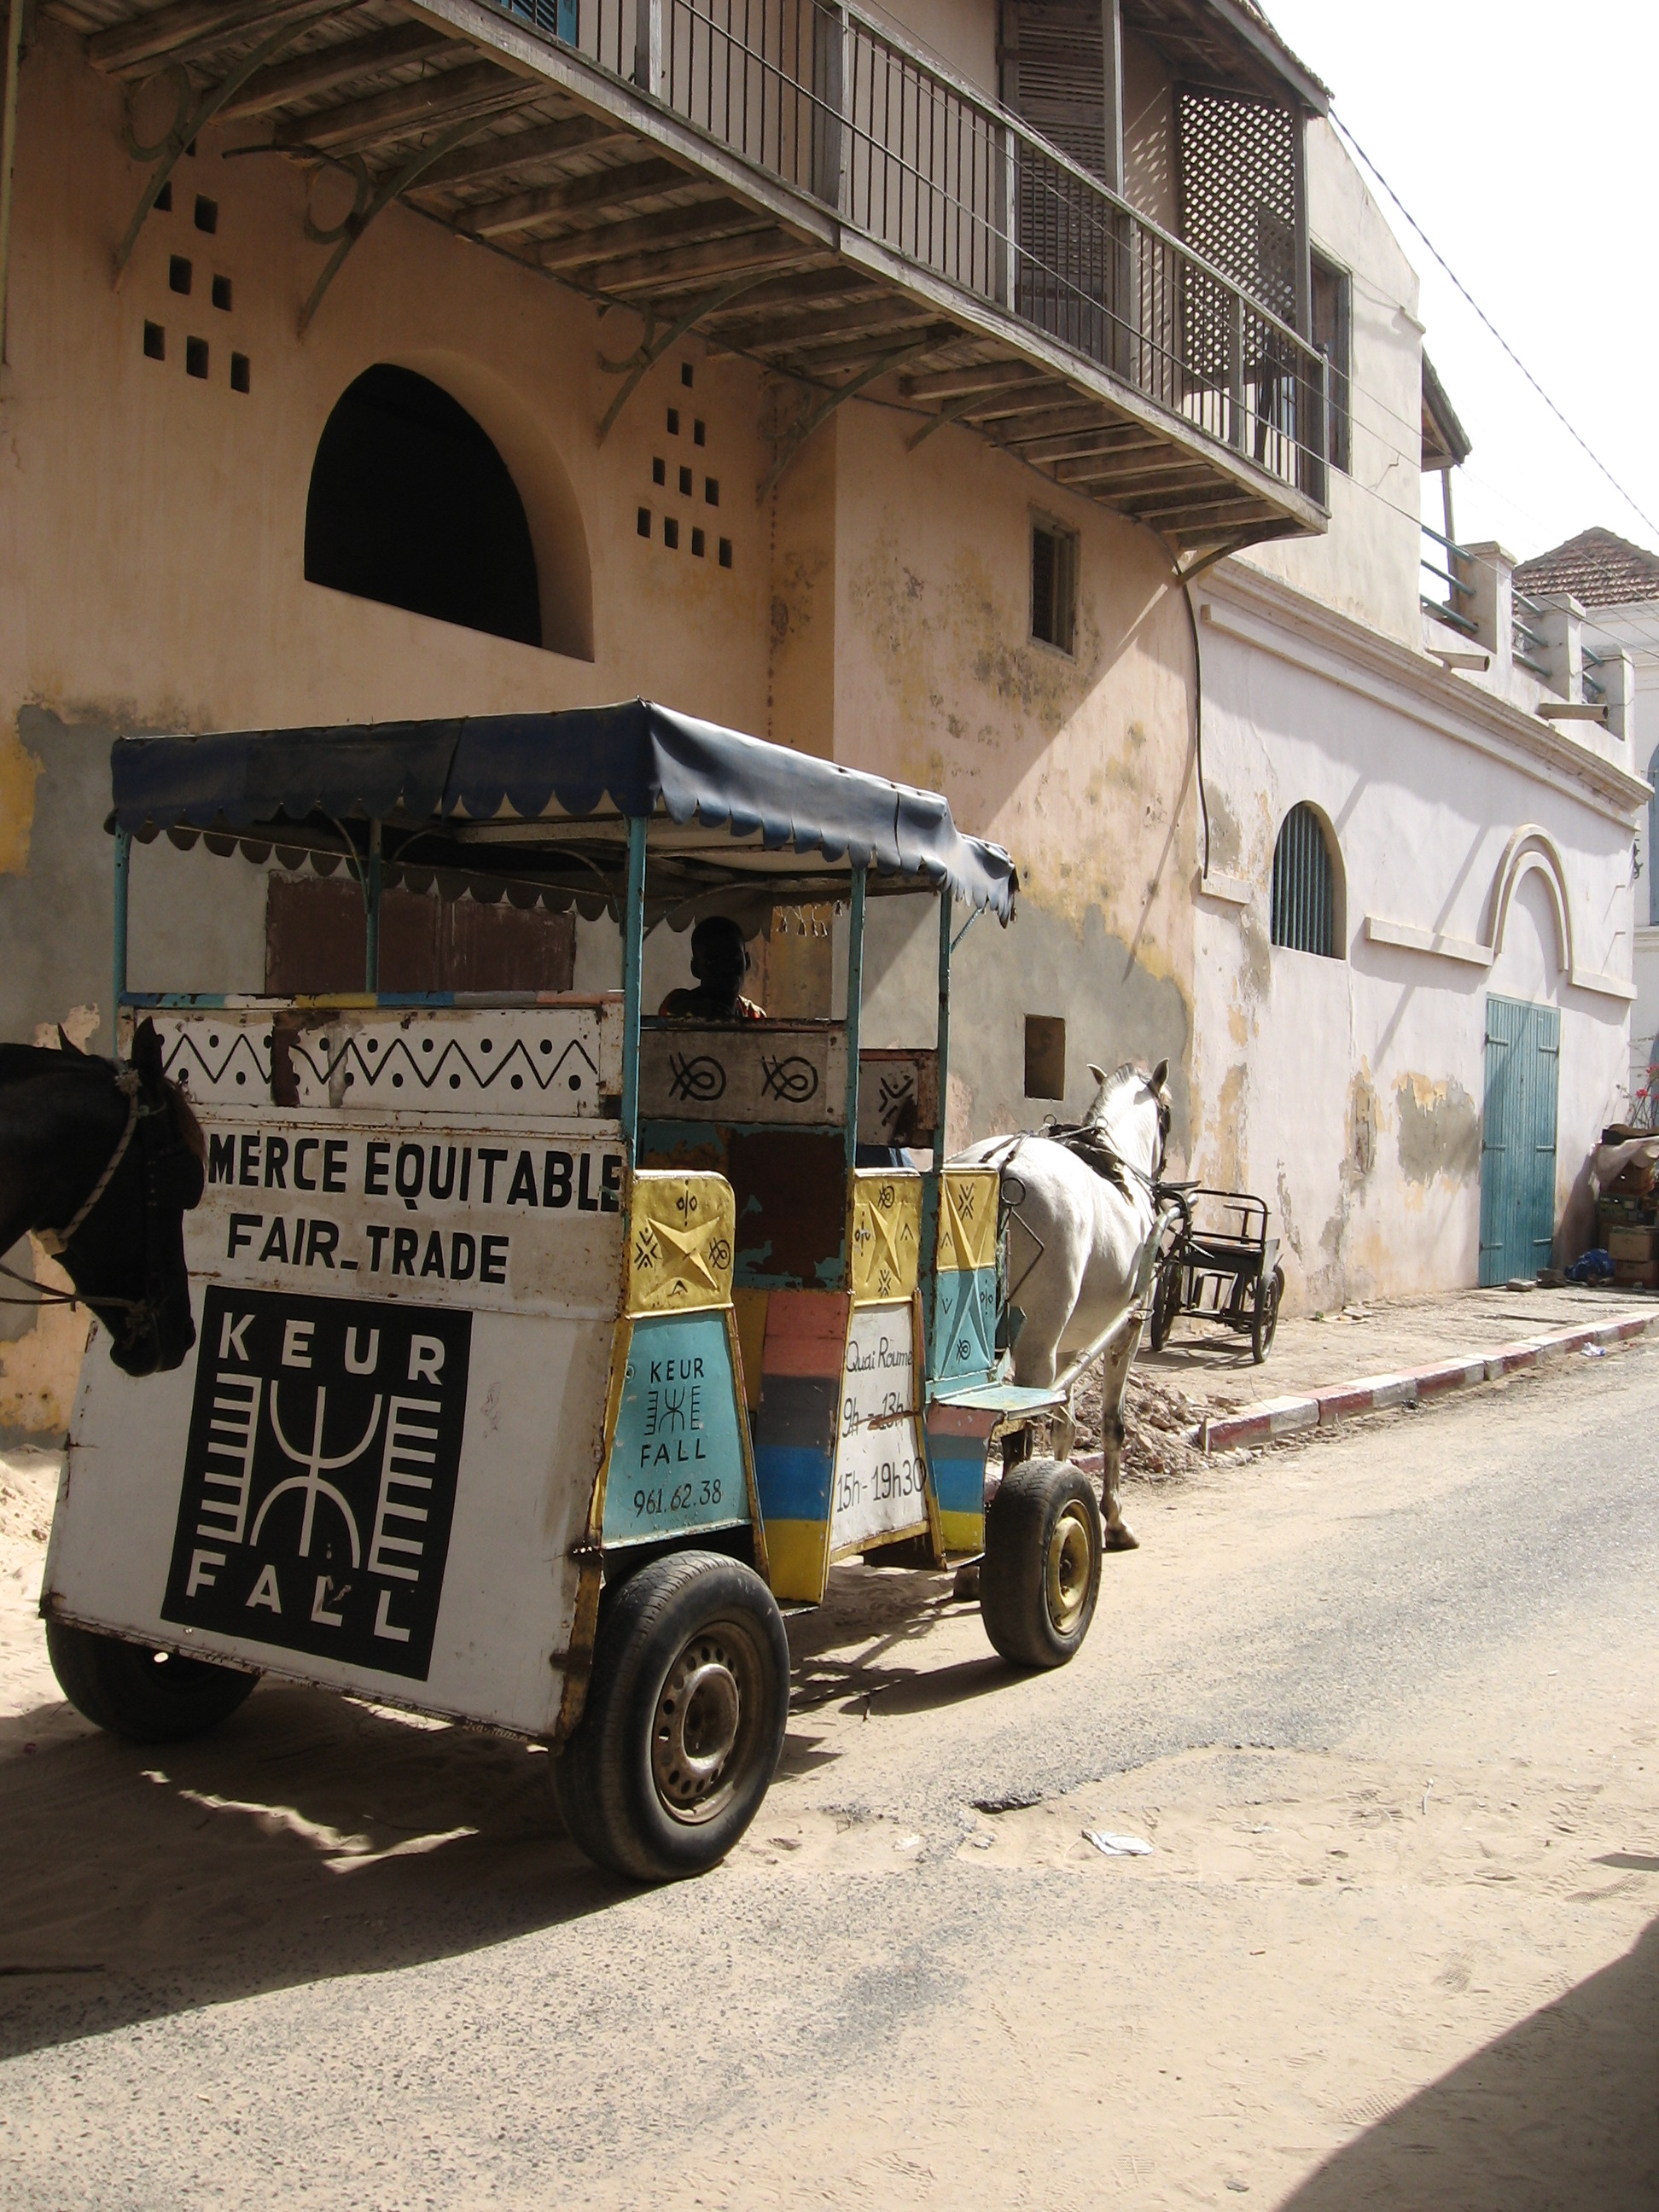 https://i1.wp.com/upload.wikimedia.org/wikipedia/commons/c/c6/Saint_louis_Senegal_cart_2006.jpg